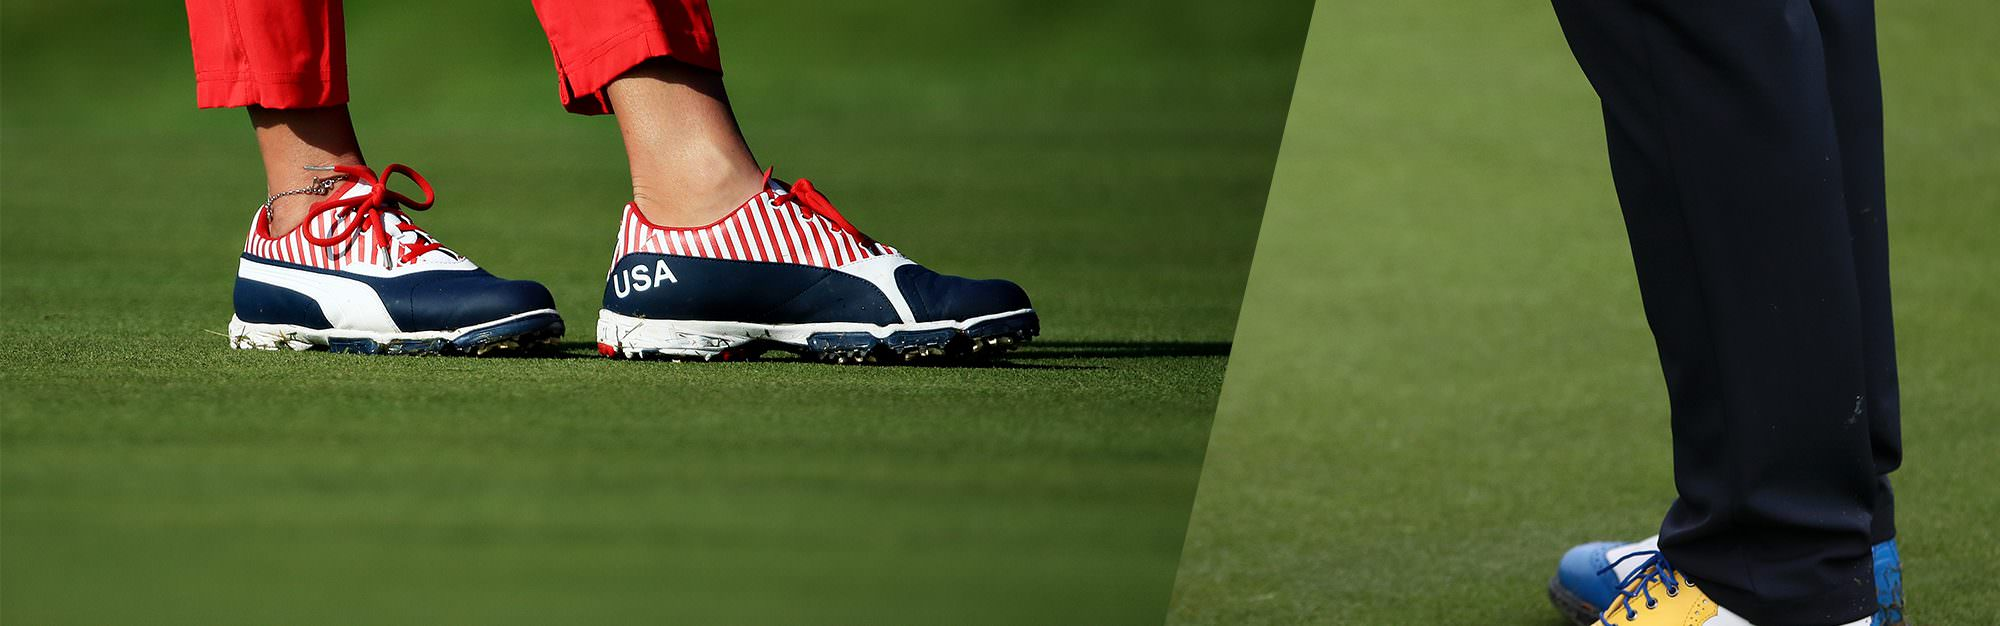 Solheim Cup of shoes - the best footwear on show at Gleneagles